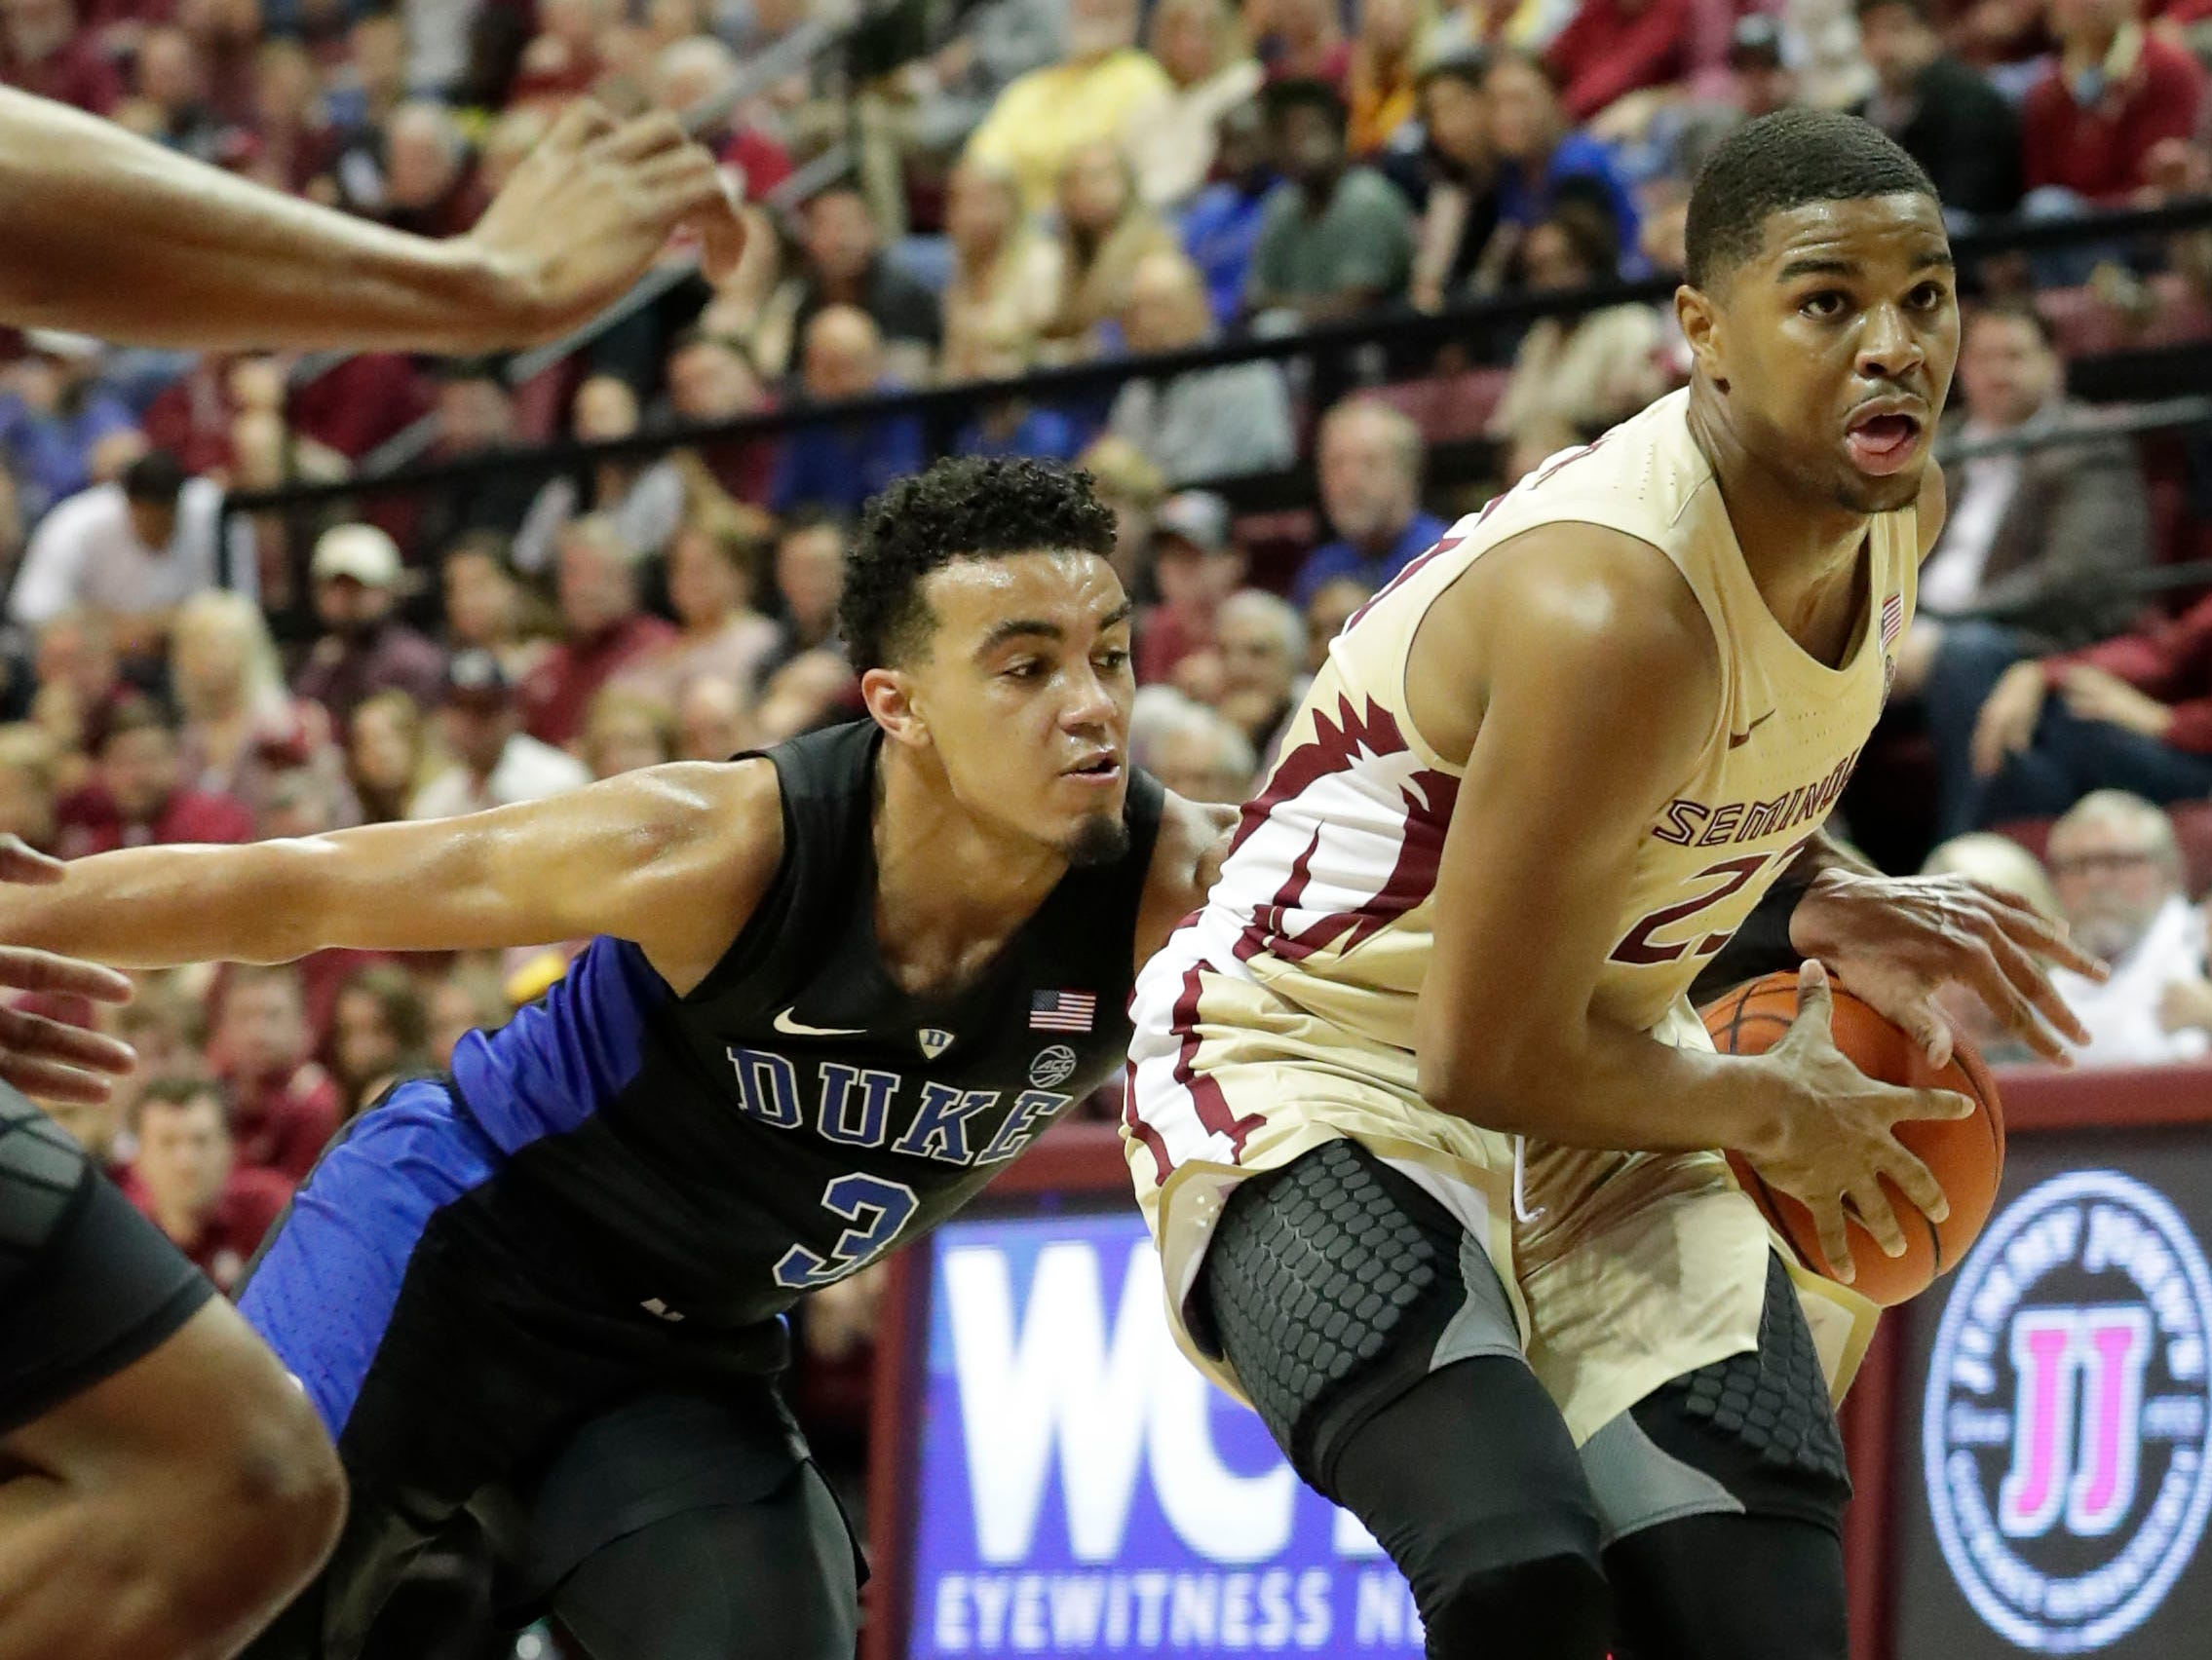 Florida State Seminoles guard M.J. Walker (23) makes his way past his defender to drive the ball to the hoop. Ranked 13 in the ACC, the Florida State Seminoles host the number 1 team, the Duke Blue Devils, at the Tucker Civic Center, Saturday, Jan. 12, 2019.